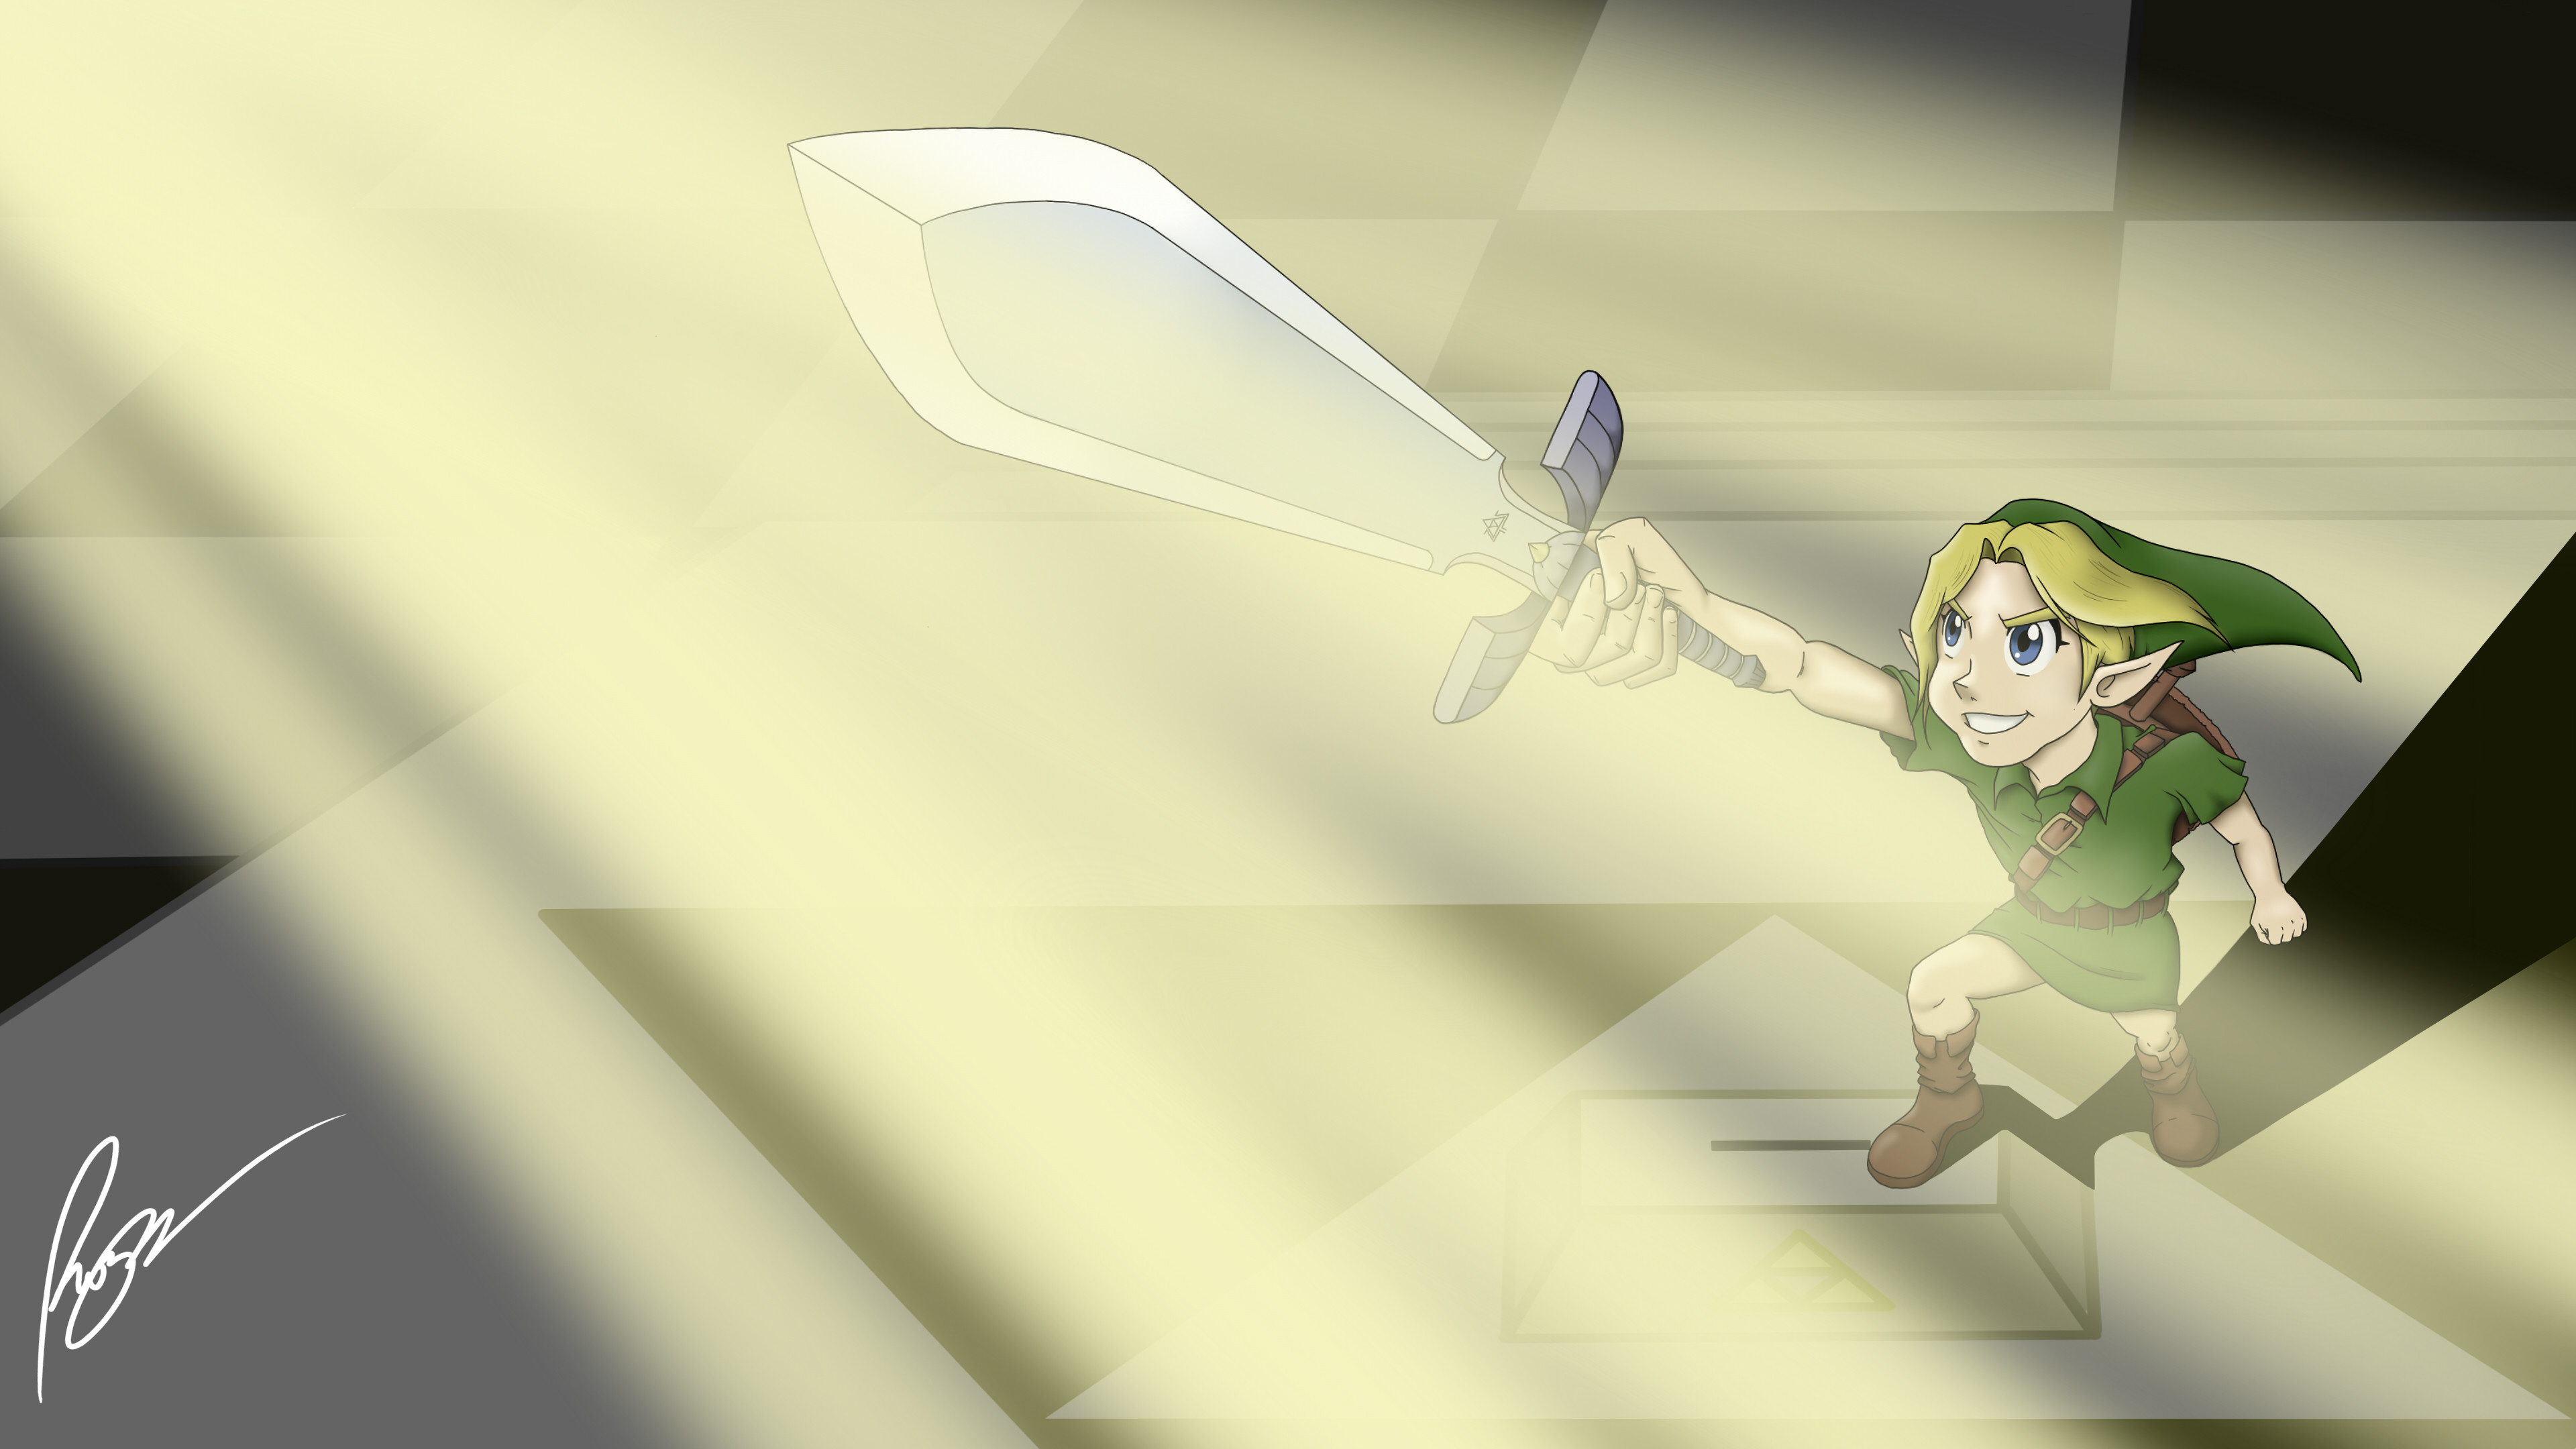 3840x2160 The Legend of Zelda - The Master Sword